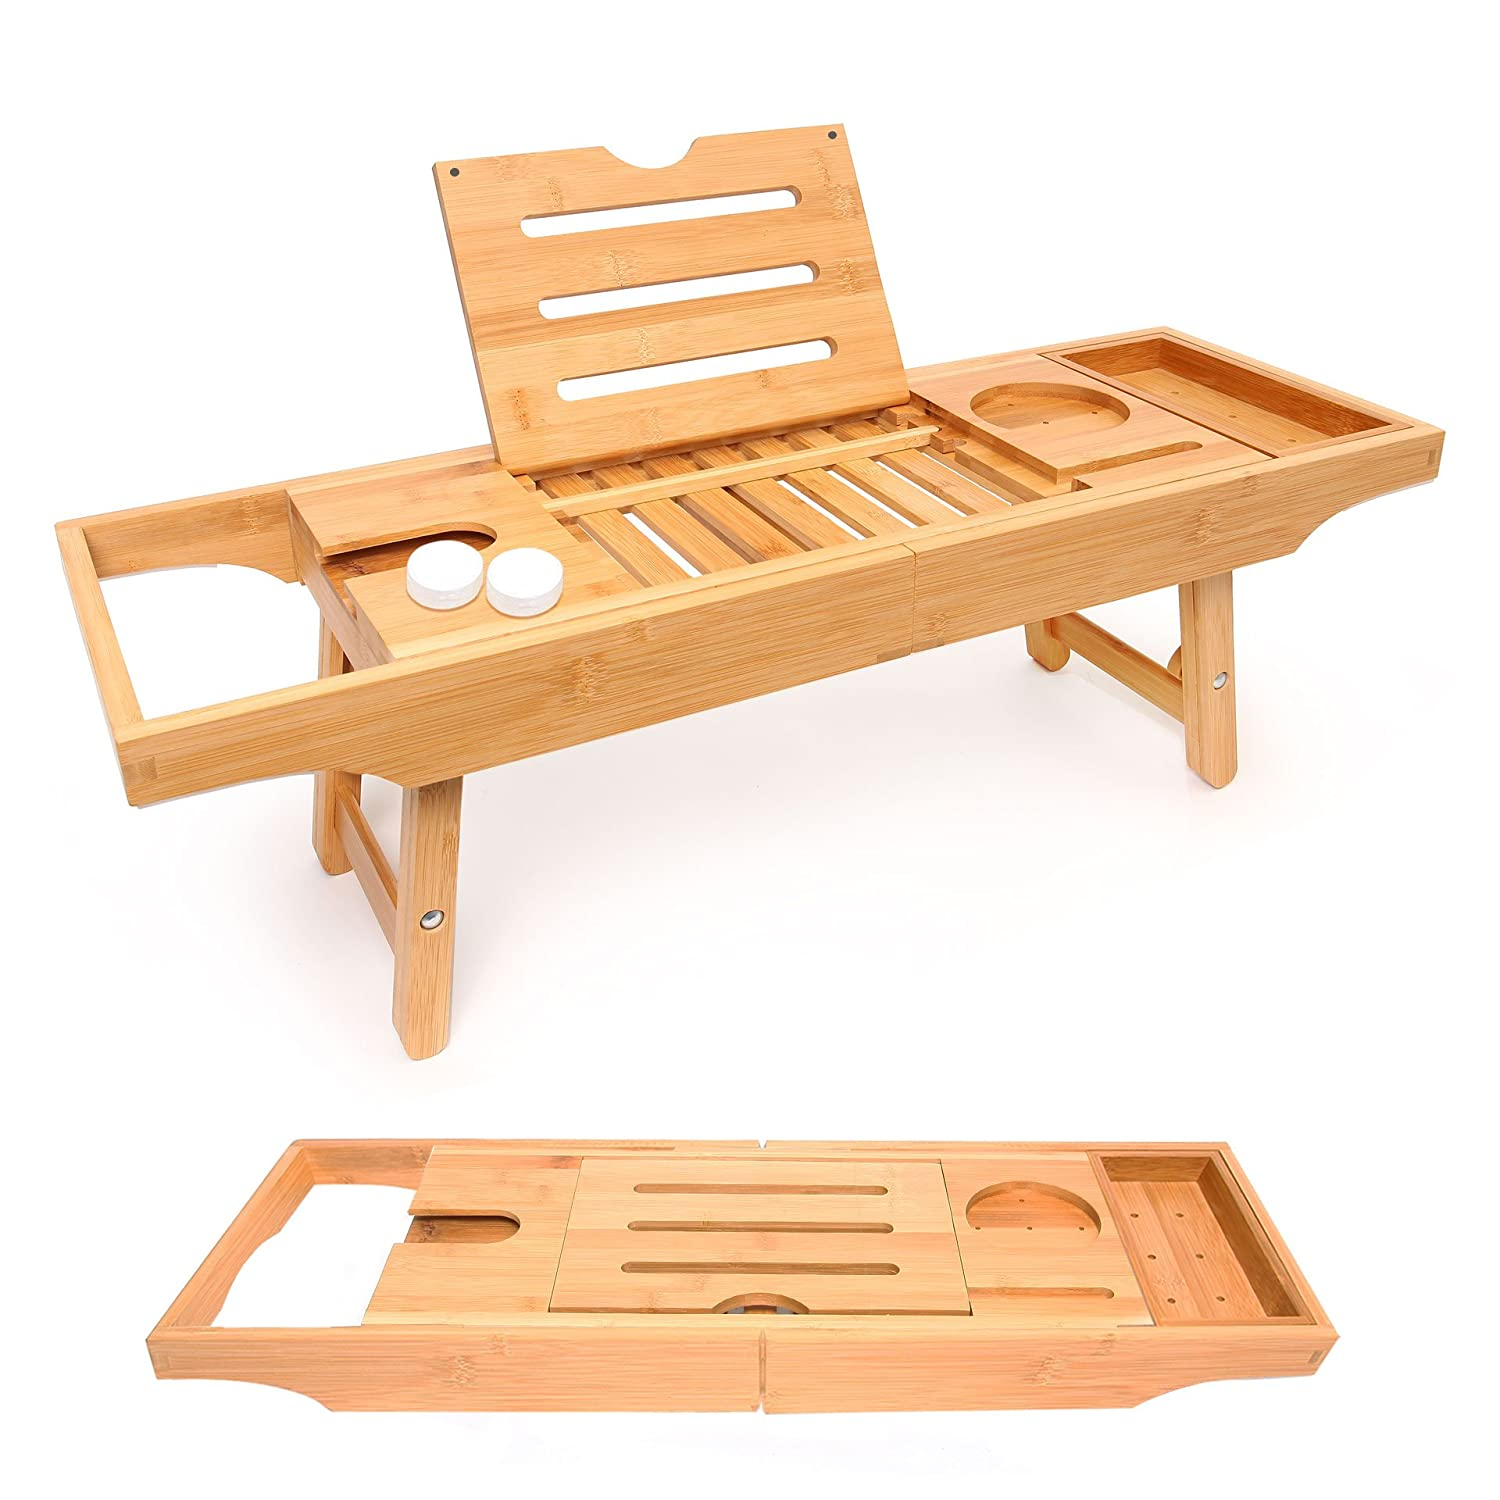 Bathtub Caddy and Bed Tray Combo - Premium Bamboo Wood with 2 Lavender Bath Bombs - Folding Legs/Fully Adjustable - Mold Resistant - Phone Tablet and Wine Holders for The Finest Home Spa Experience Bambuloo